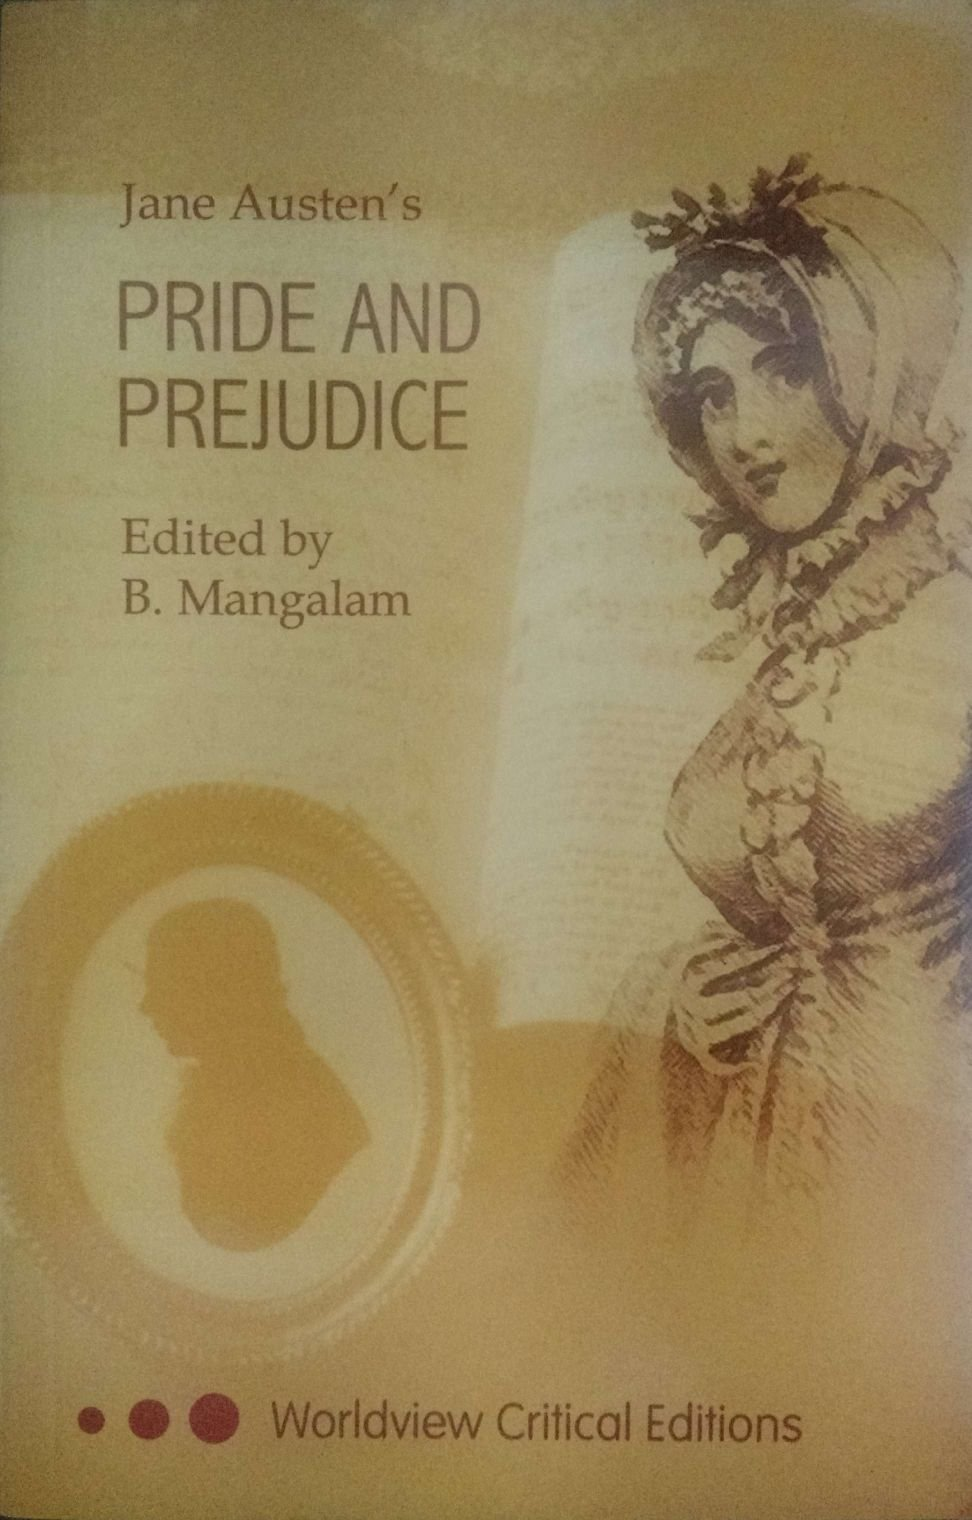 in buy pride and prejudice worldview critical editions in buy pride and prejudice worldview critical editions book online at low prices in pride and prejudice worldview critical editions